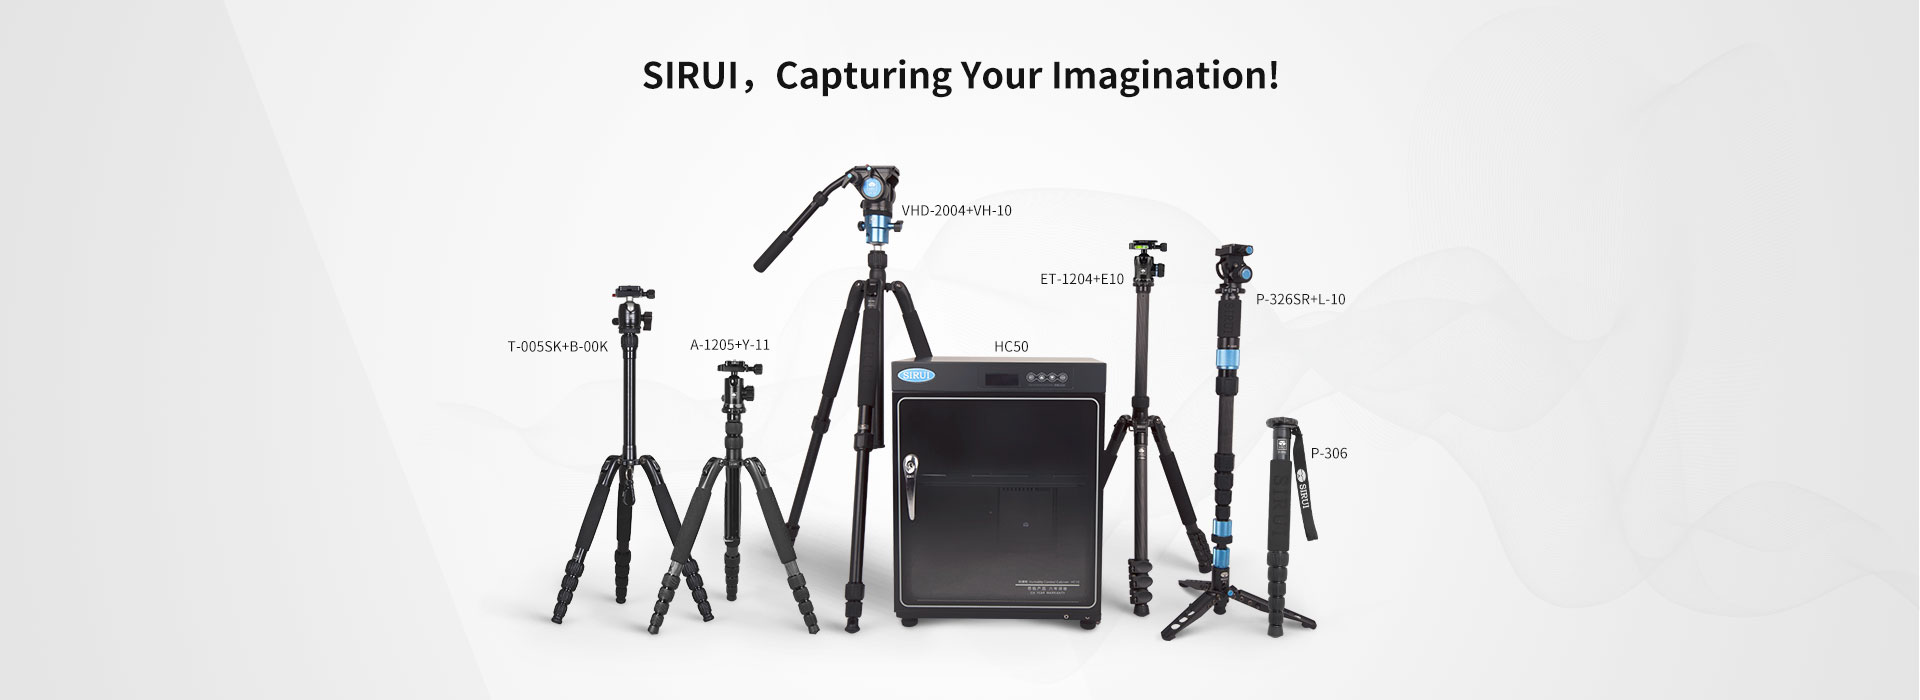 SIRUI, Capturing Your Imagination!